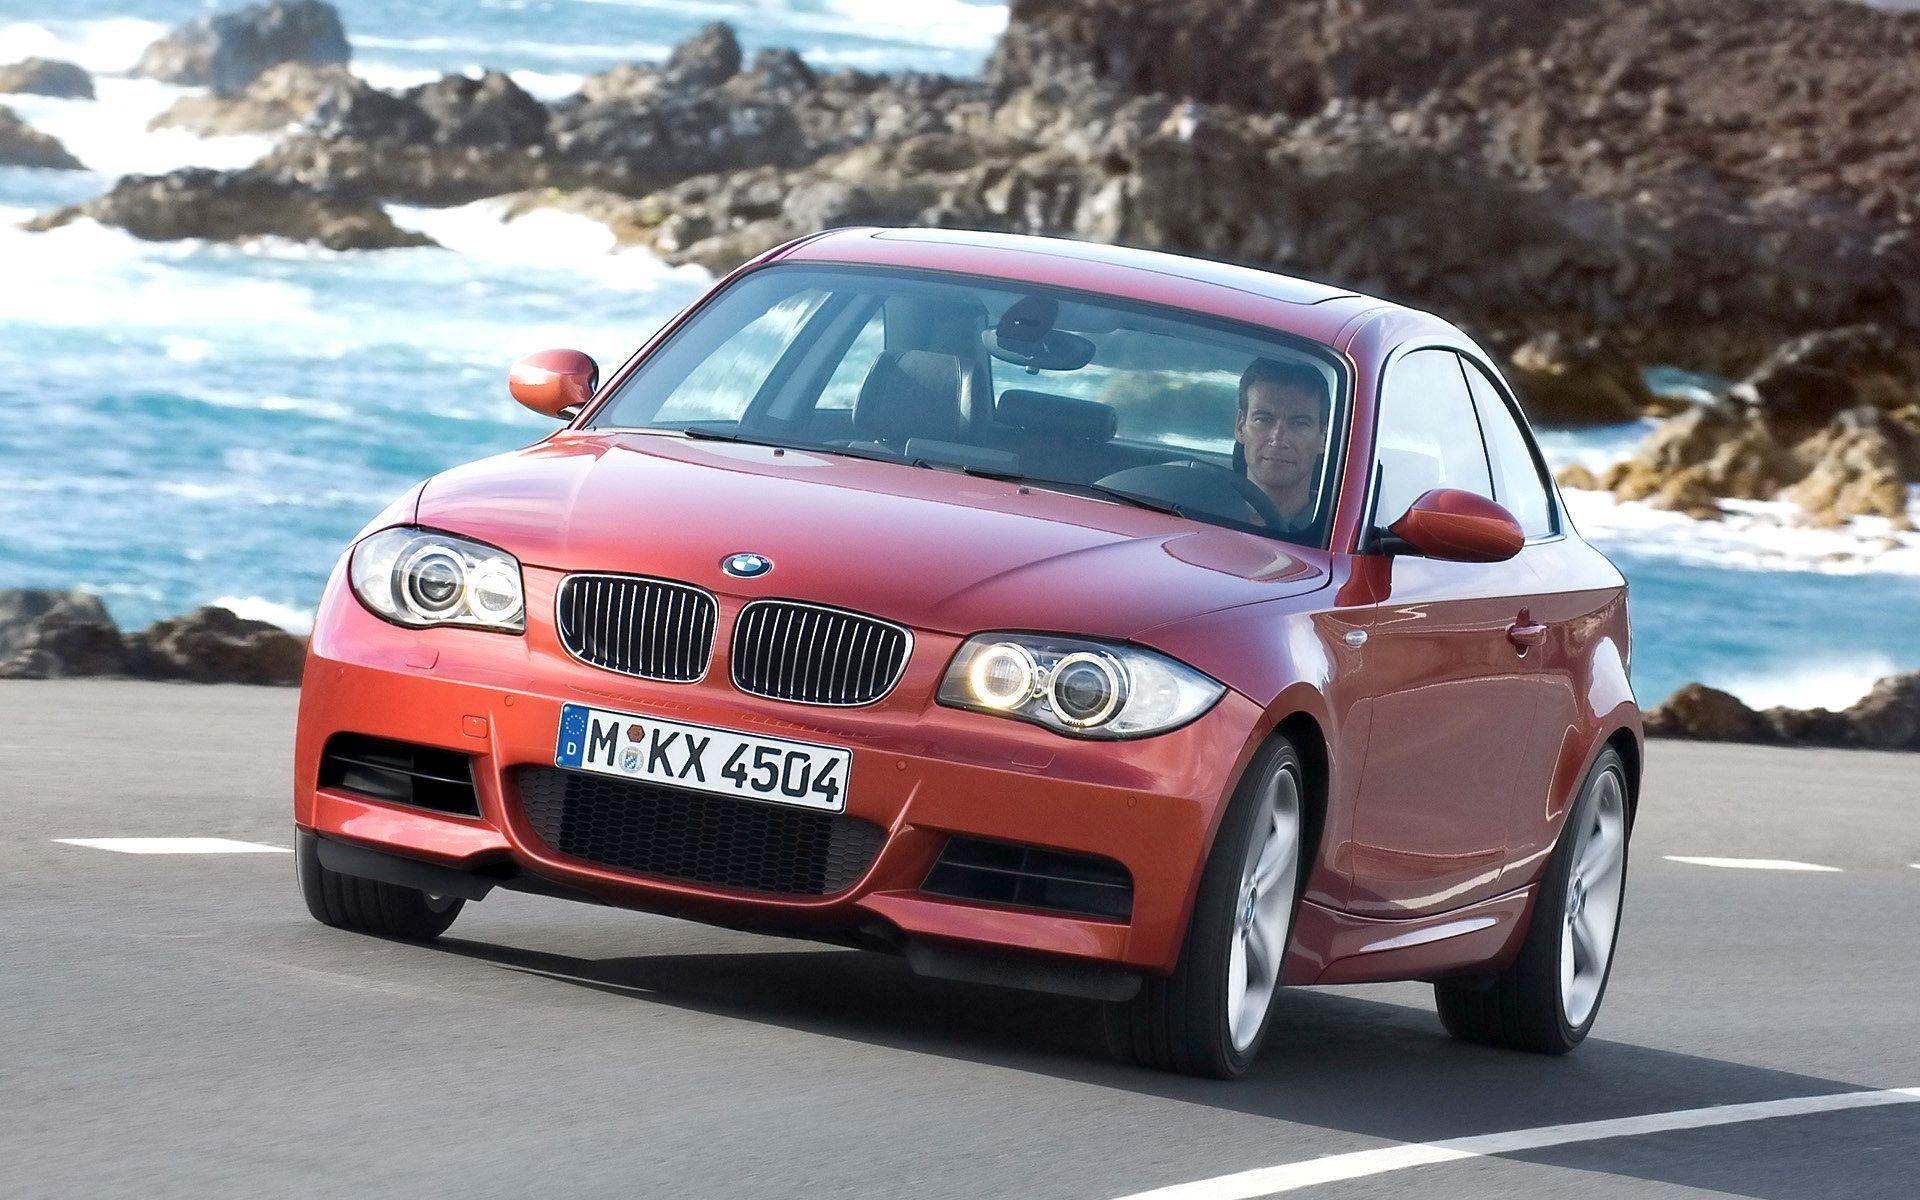 2008 BMW 1 Series Coupe Wallpaper 12 - 1920x1200